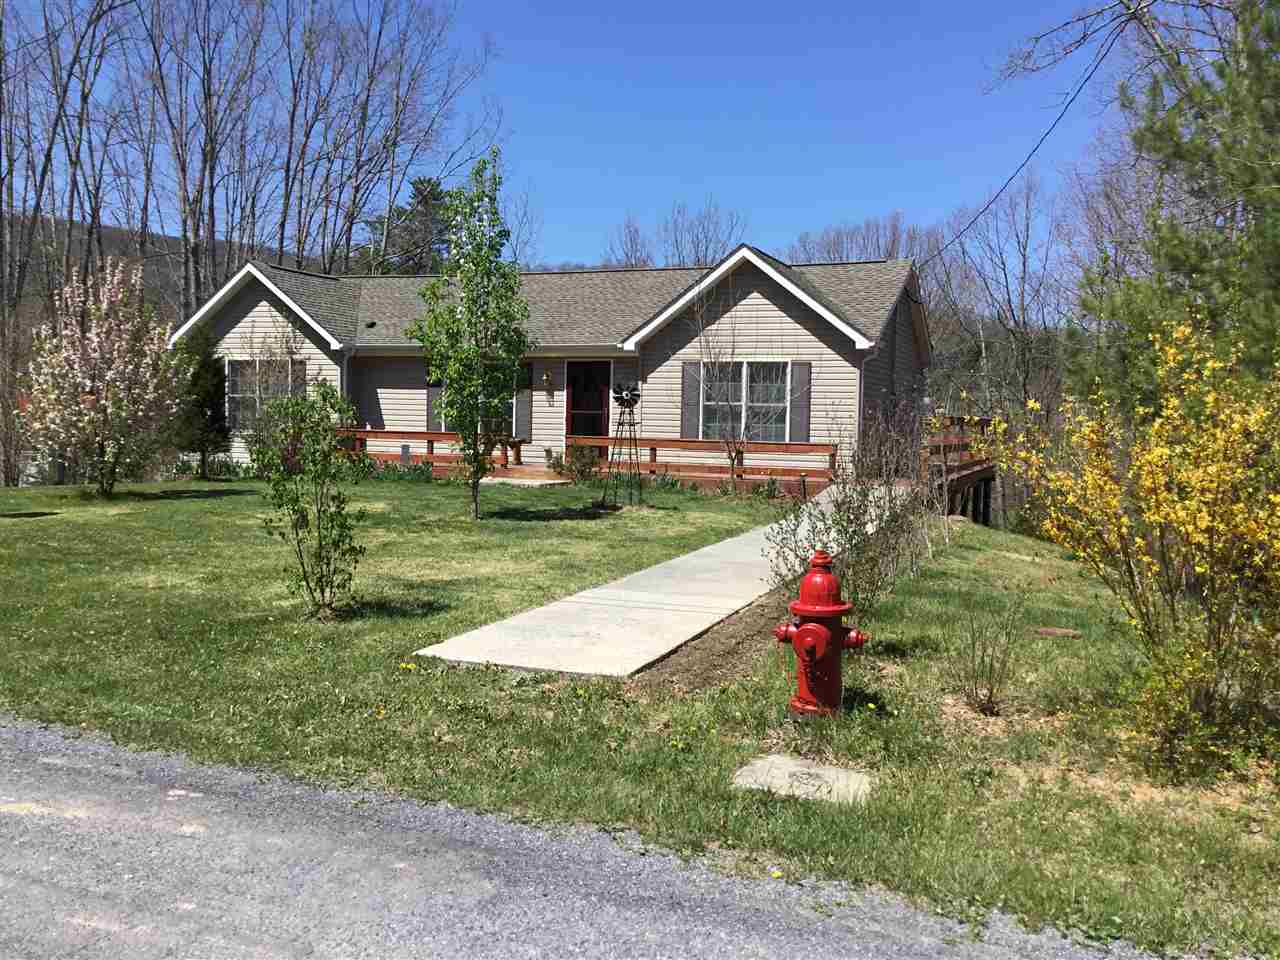 390 OAKWOOD ESTATES, FRANKLIN, WV 26807